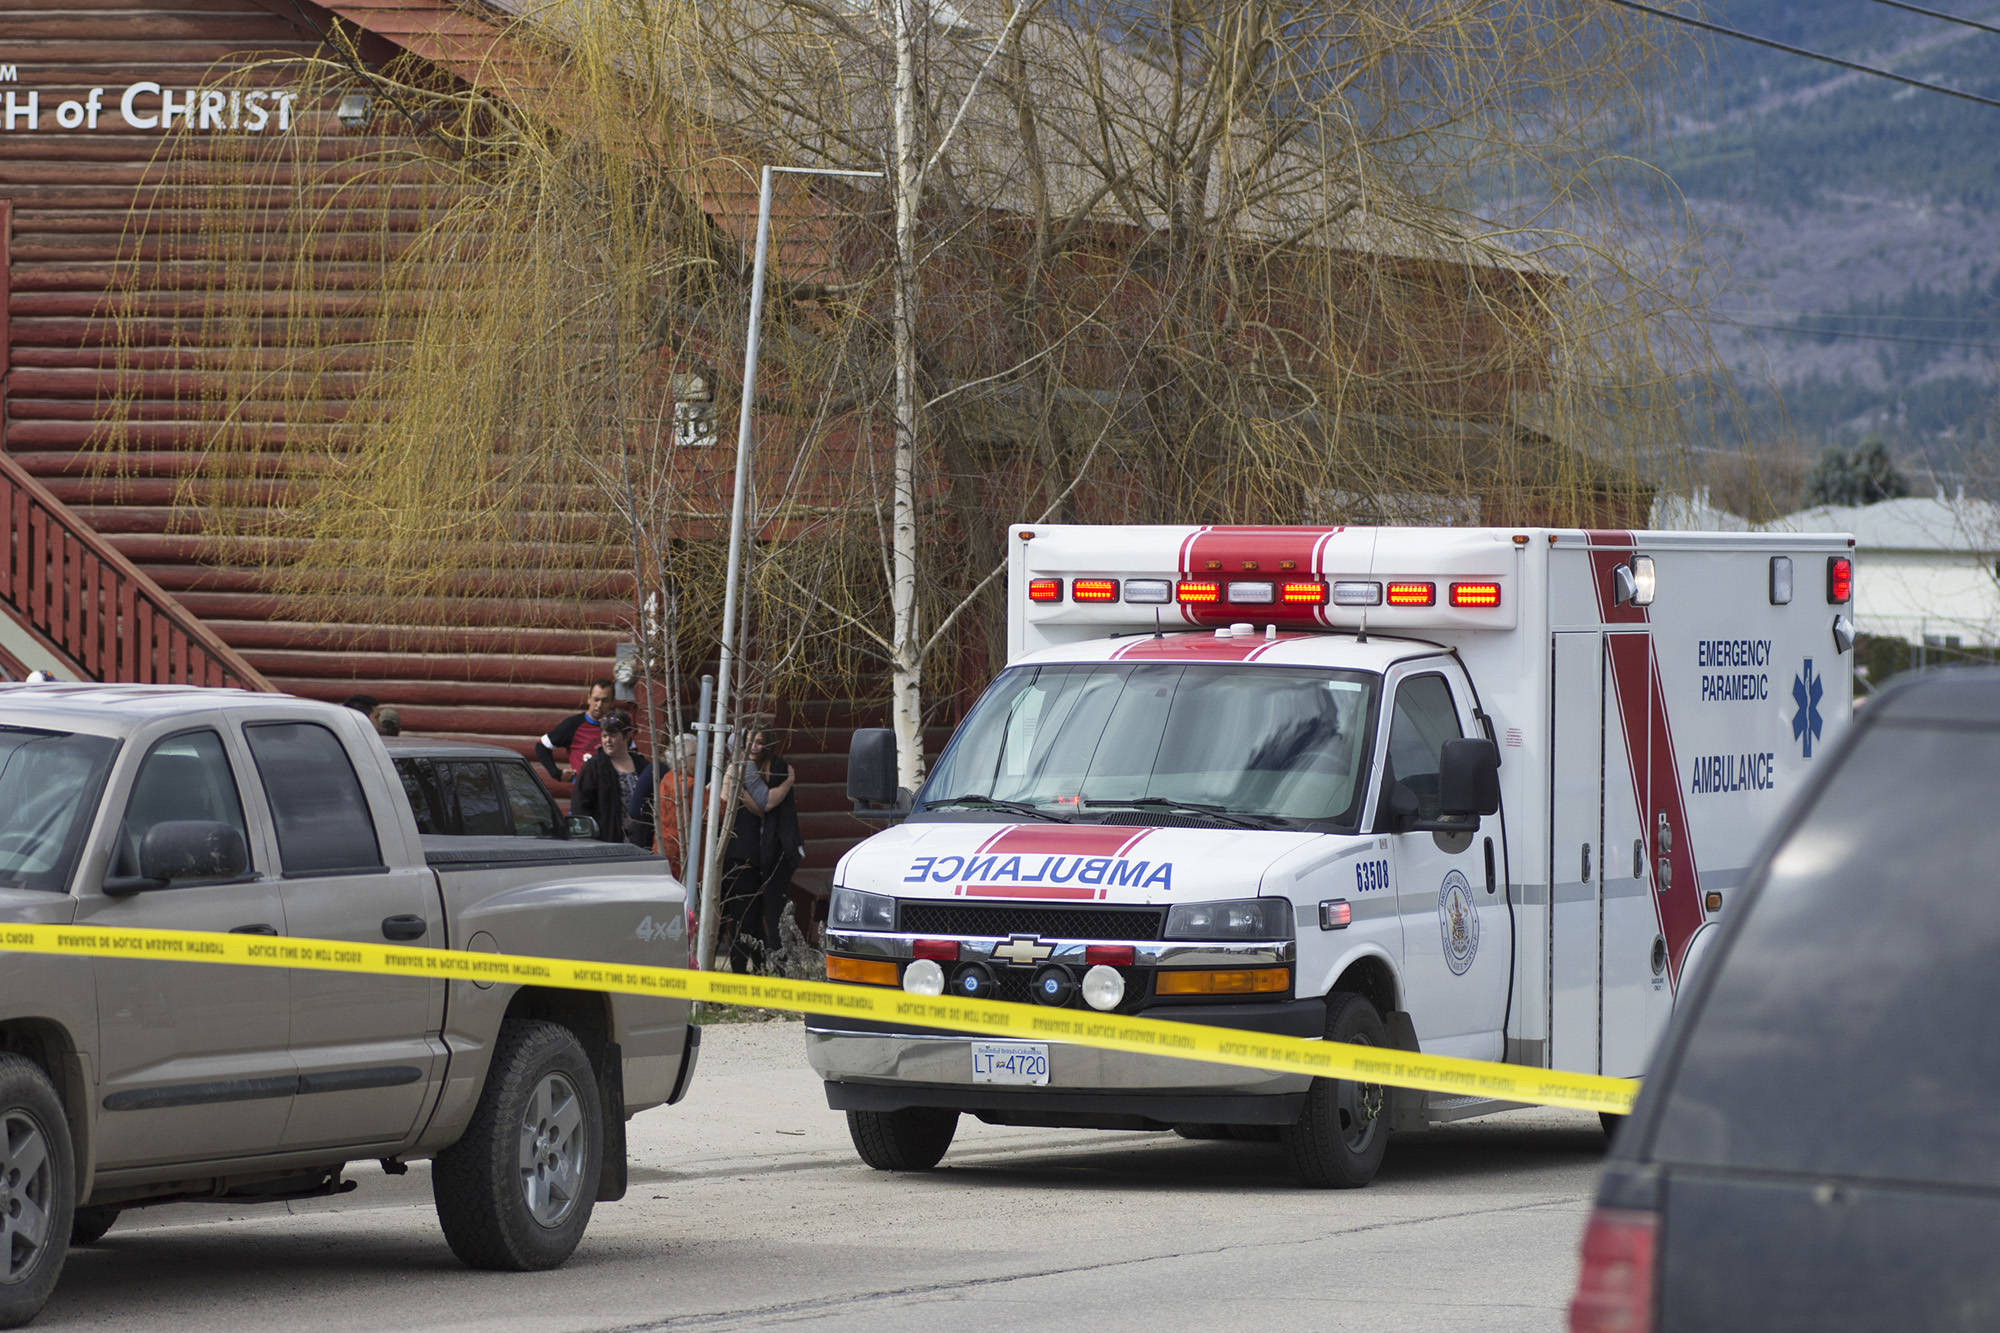 Emergency Health Services paramedics respond to the Sunday, April 14 shooting at the Salmon Arm Church of Christ. (File photo)